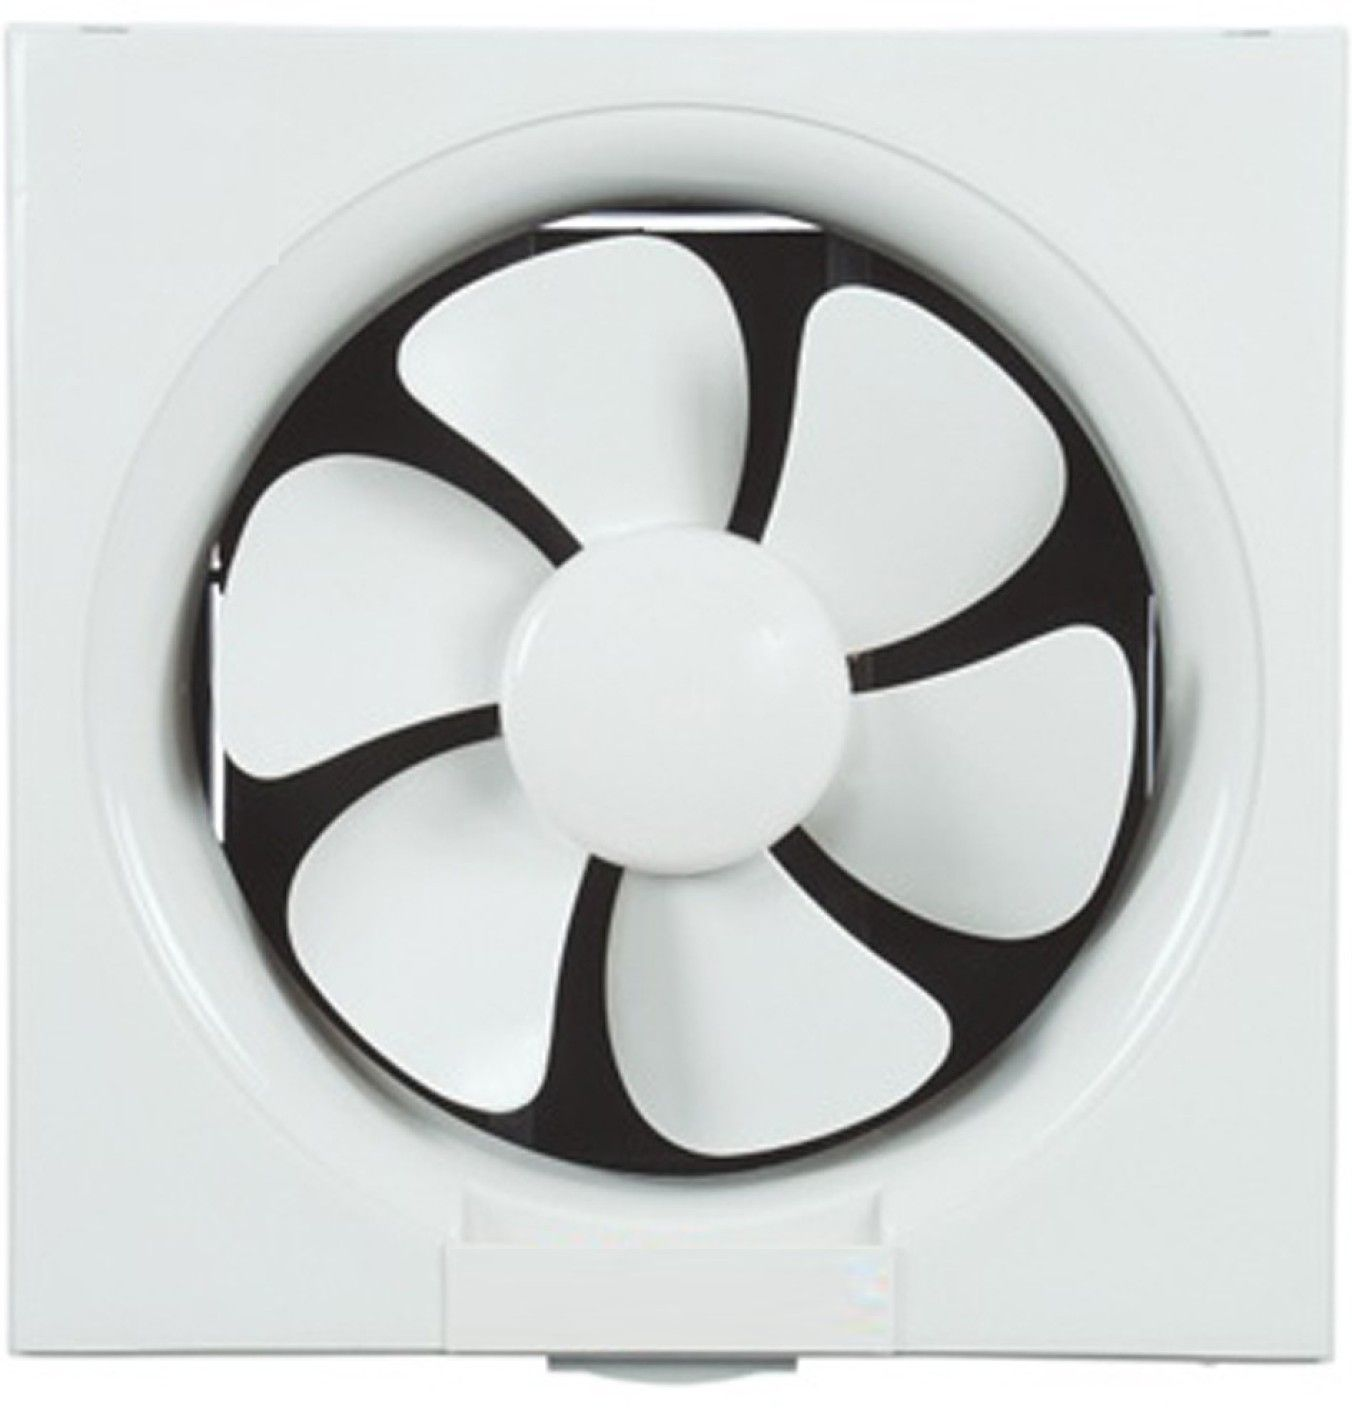 Visit Here Top Quality Of Ventilation Fan Ventilation Fan Suppliers In India With Images Exhaust Fan Kitchen Exhaust Fan Ventilation Fan